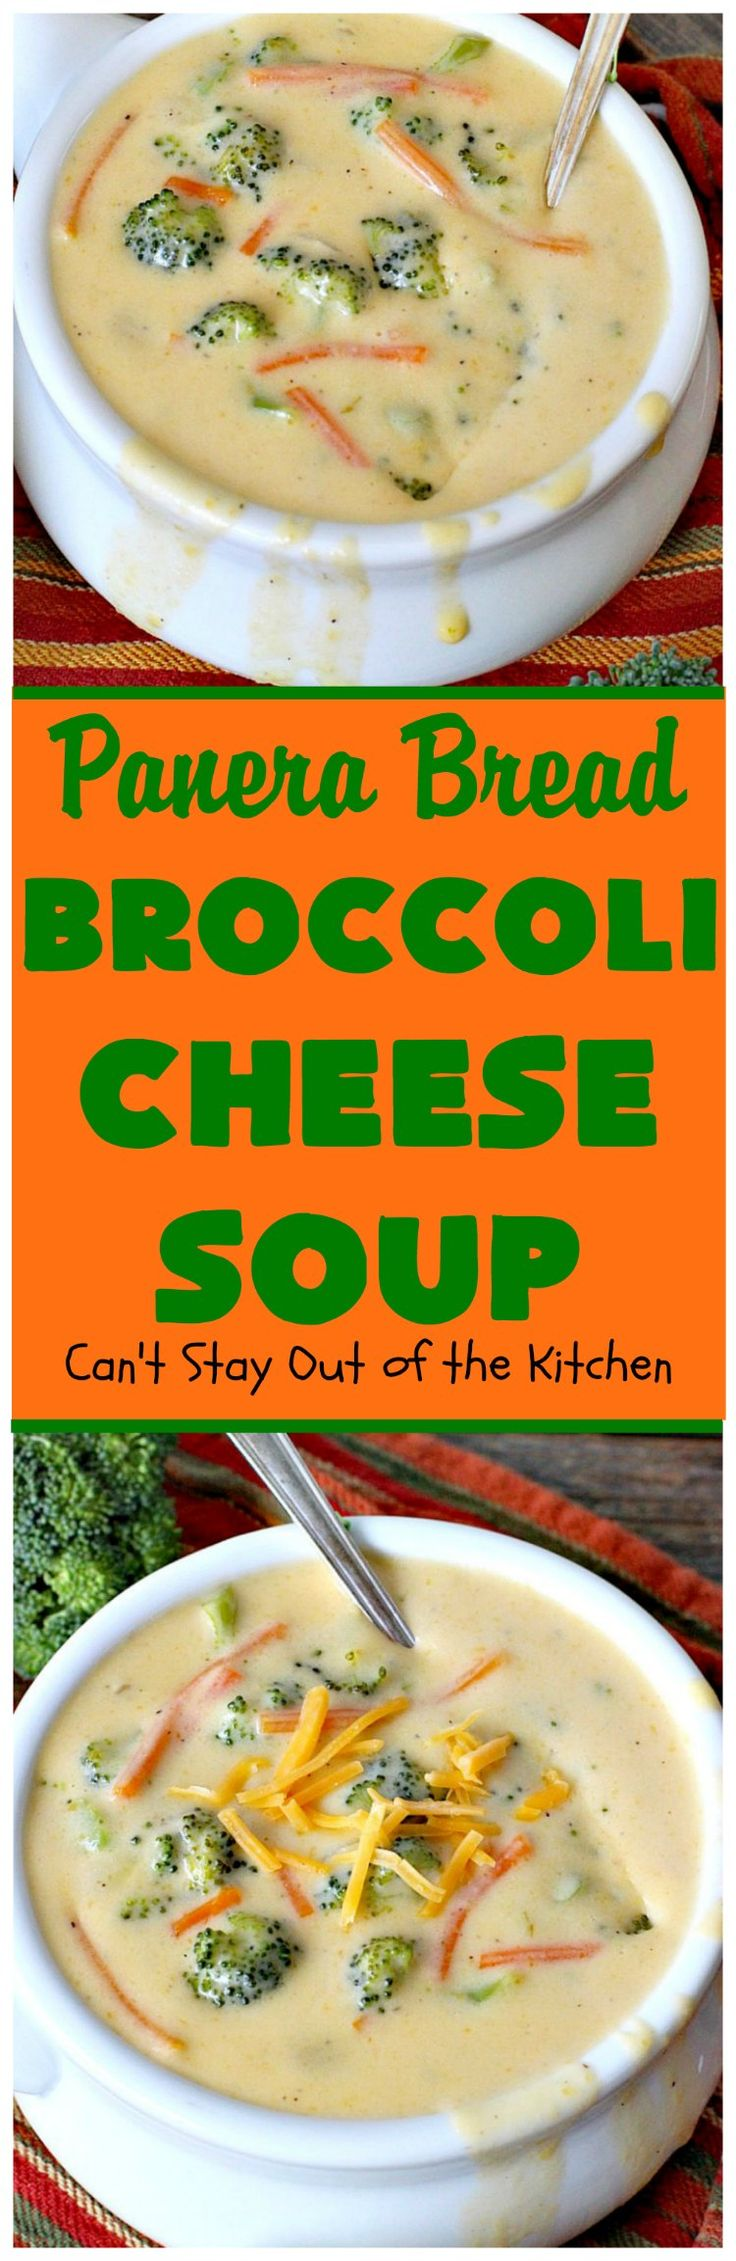 Panera Bread Broccoli Cheese Soup - Can't Stay Out of the Kitchen